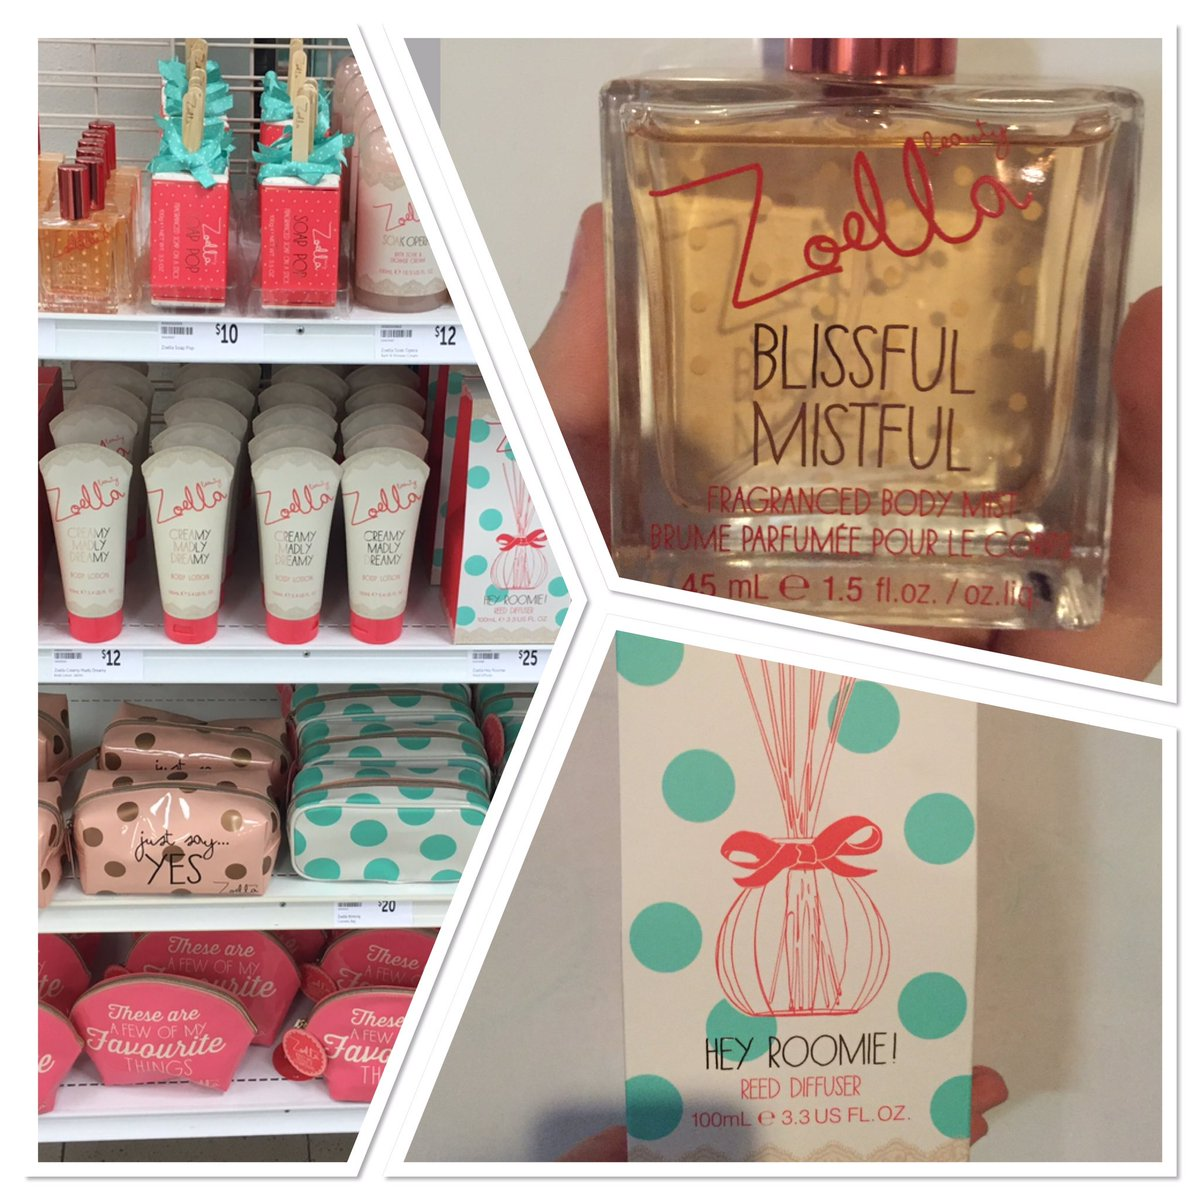 Finally😻@Targetaus totally inlove with the products, thanks so much I'm so incredibly excited @Zoella @ZoellaBeauty https://t.co/9MEYRaU7LN